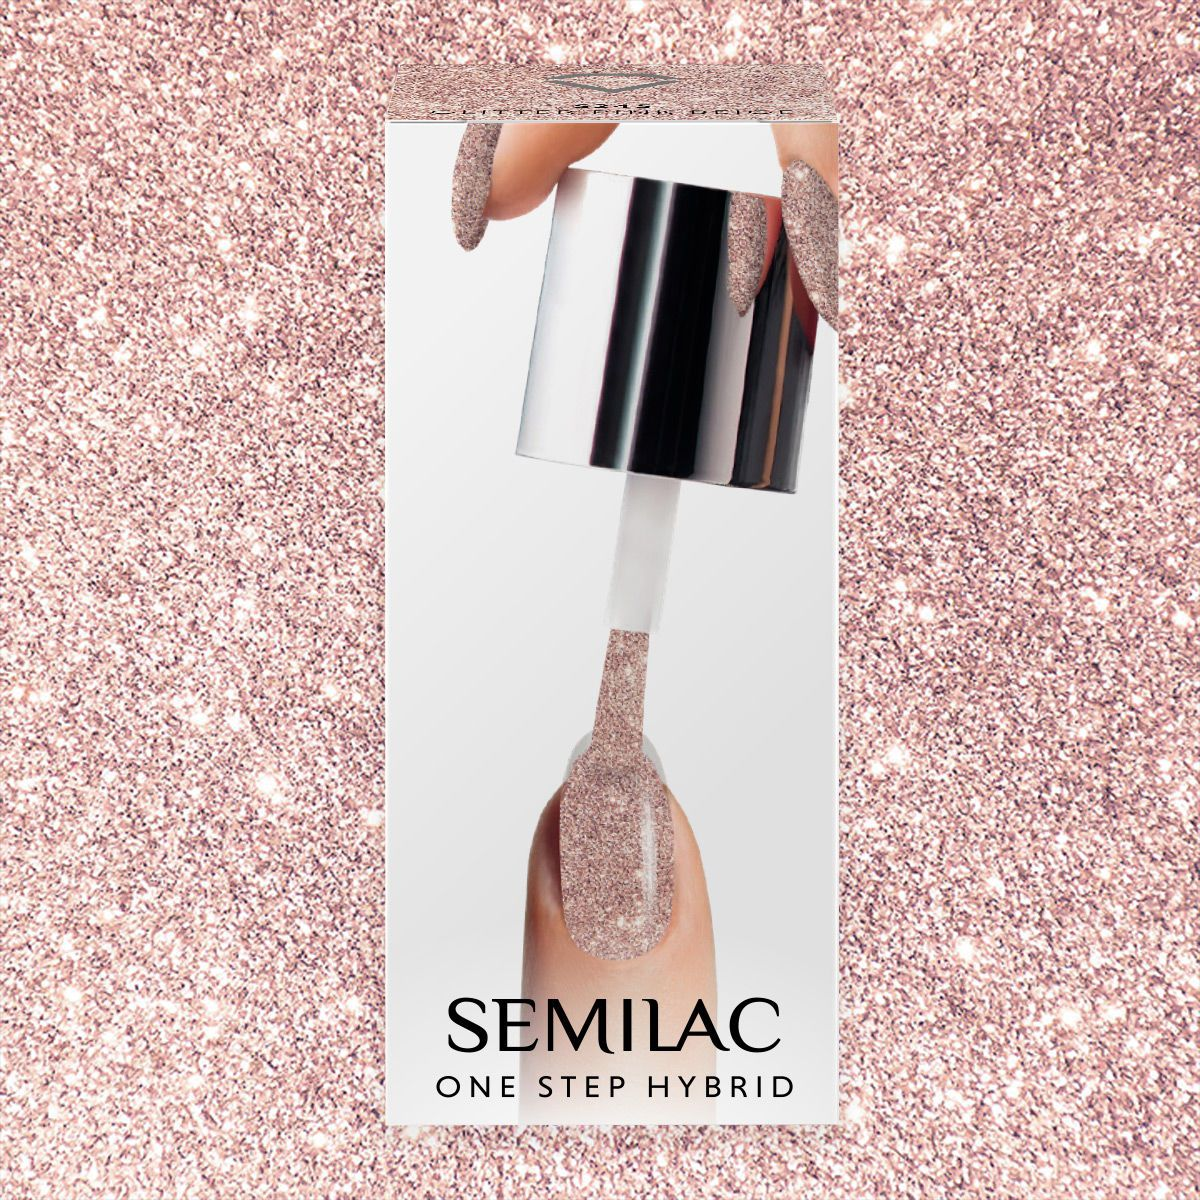 Semilac One Step Hybrid Gel Polish 5ml 245 Glitter Pink Beige - FlowertushBeauty